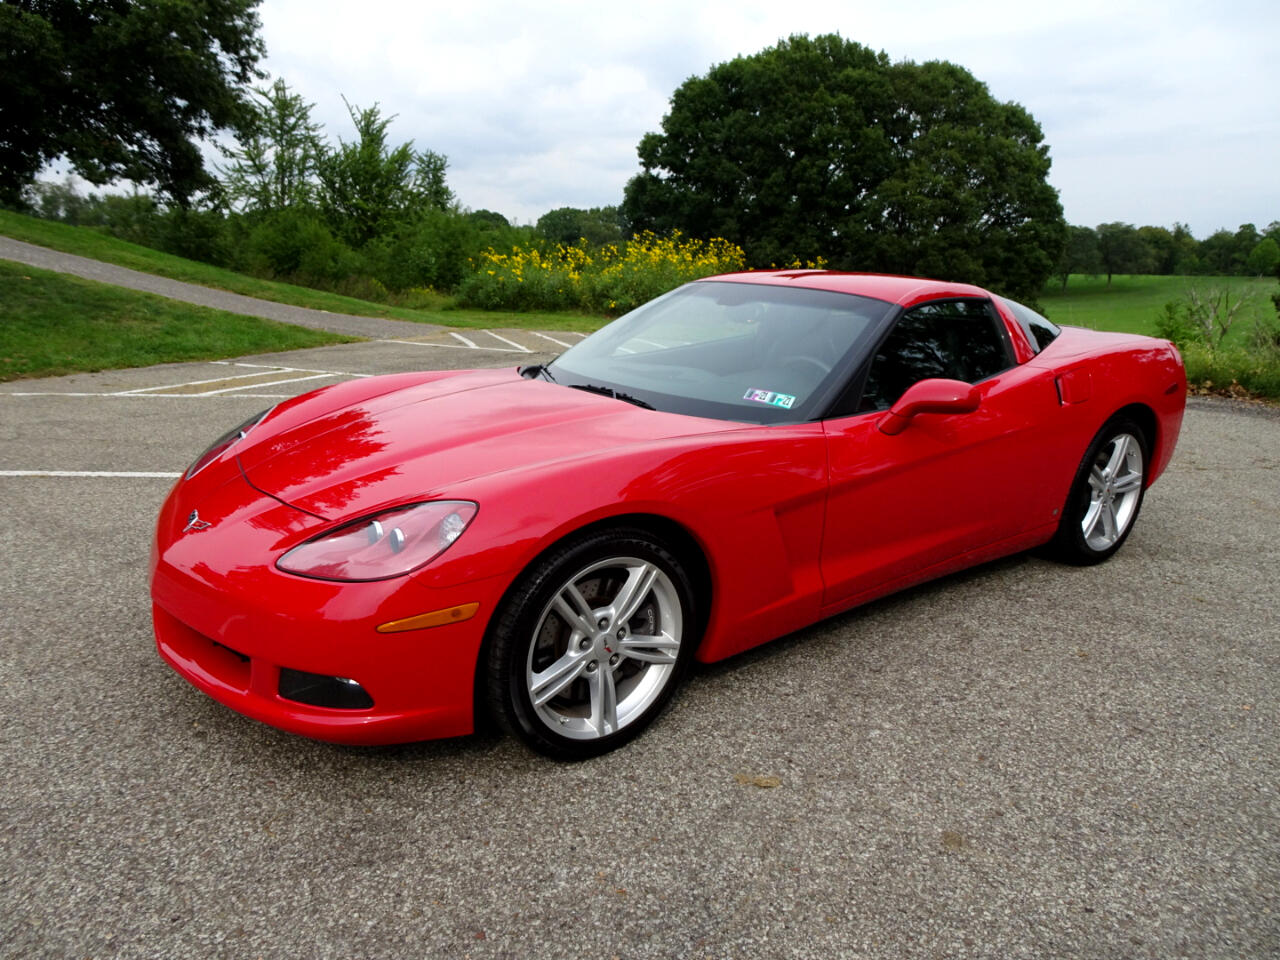 Chevrolet Corvette Z51 1LT Coupe Manual 2008